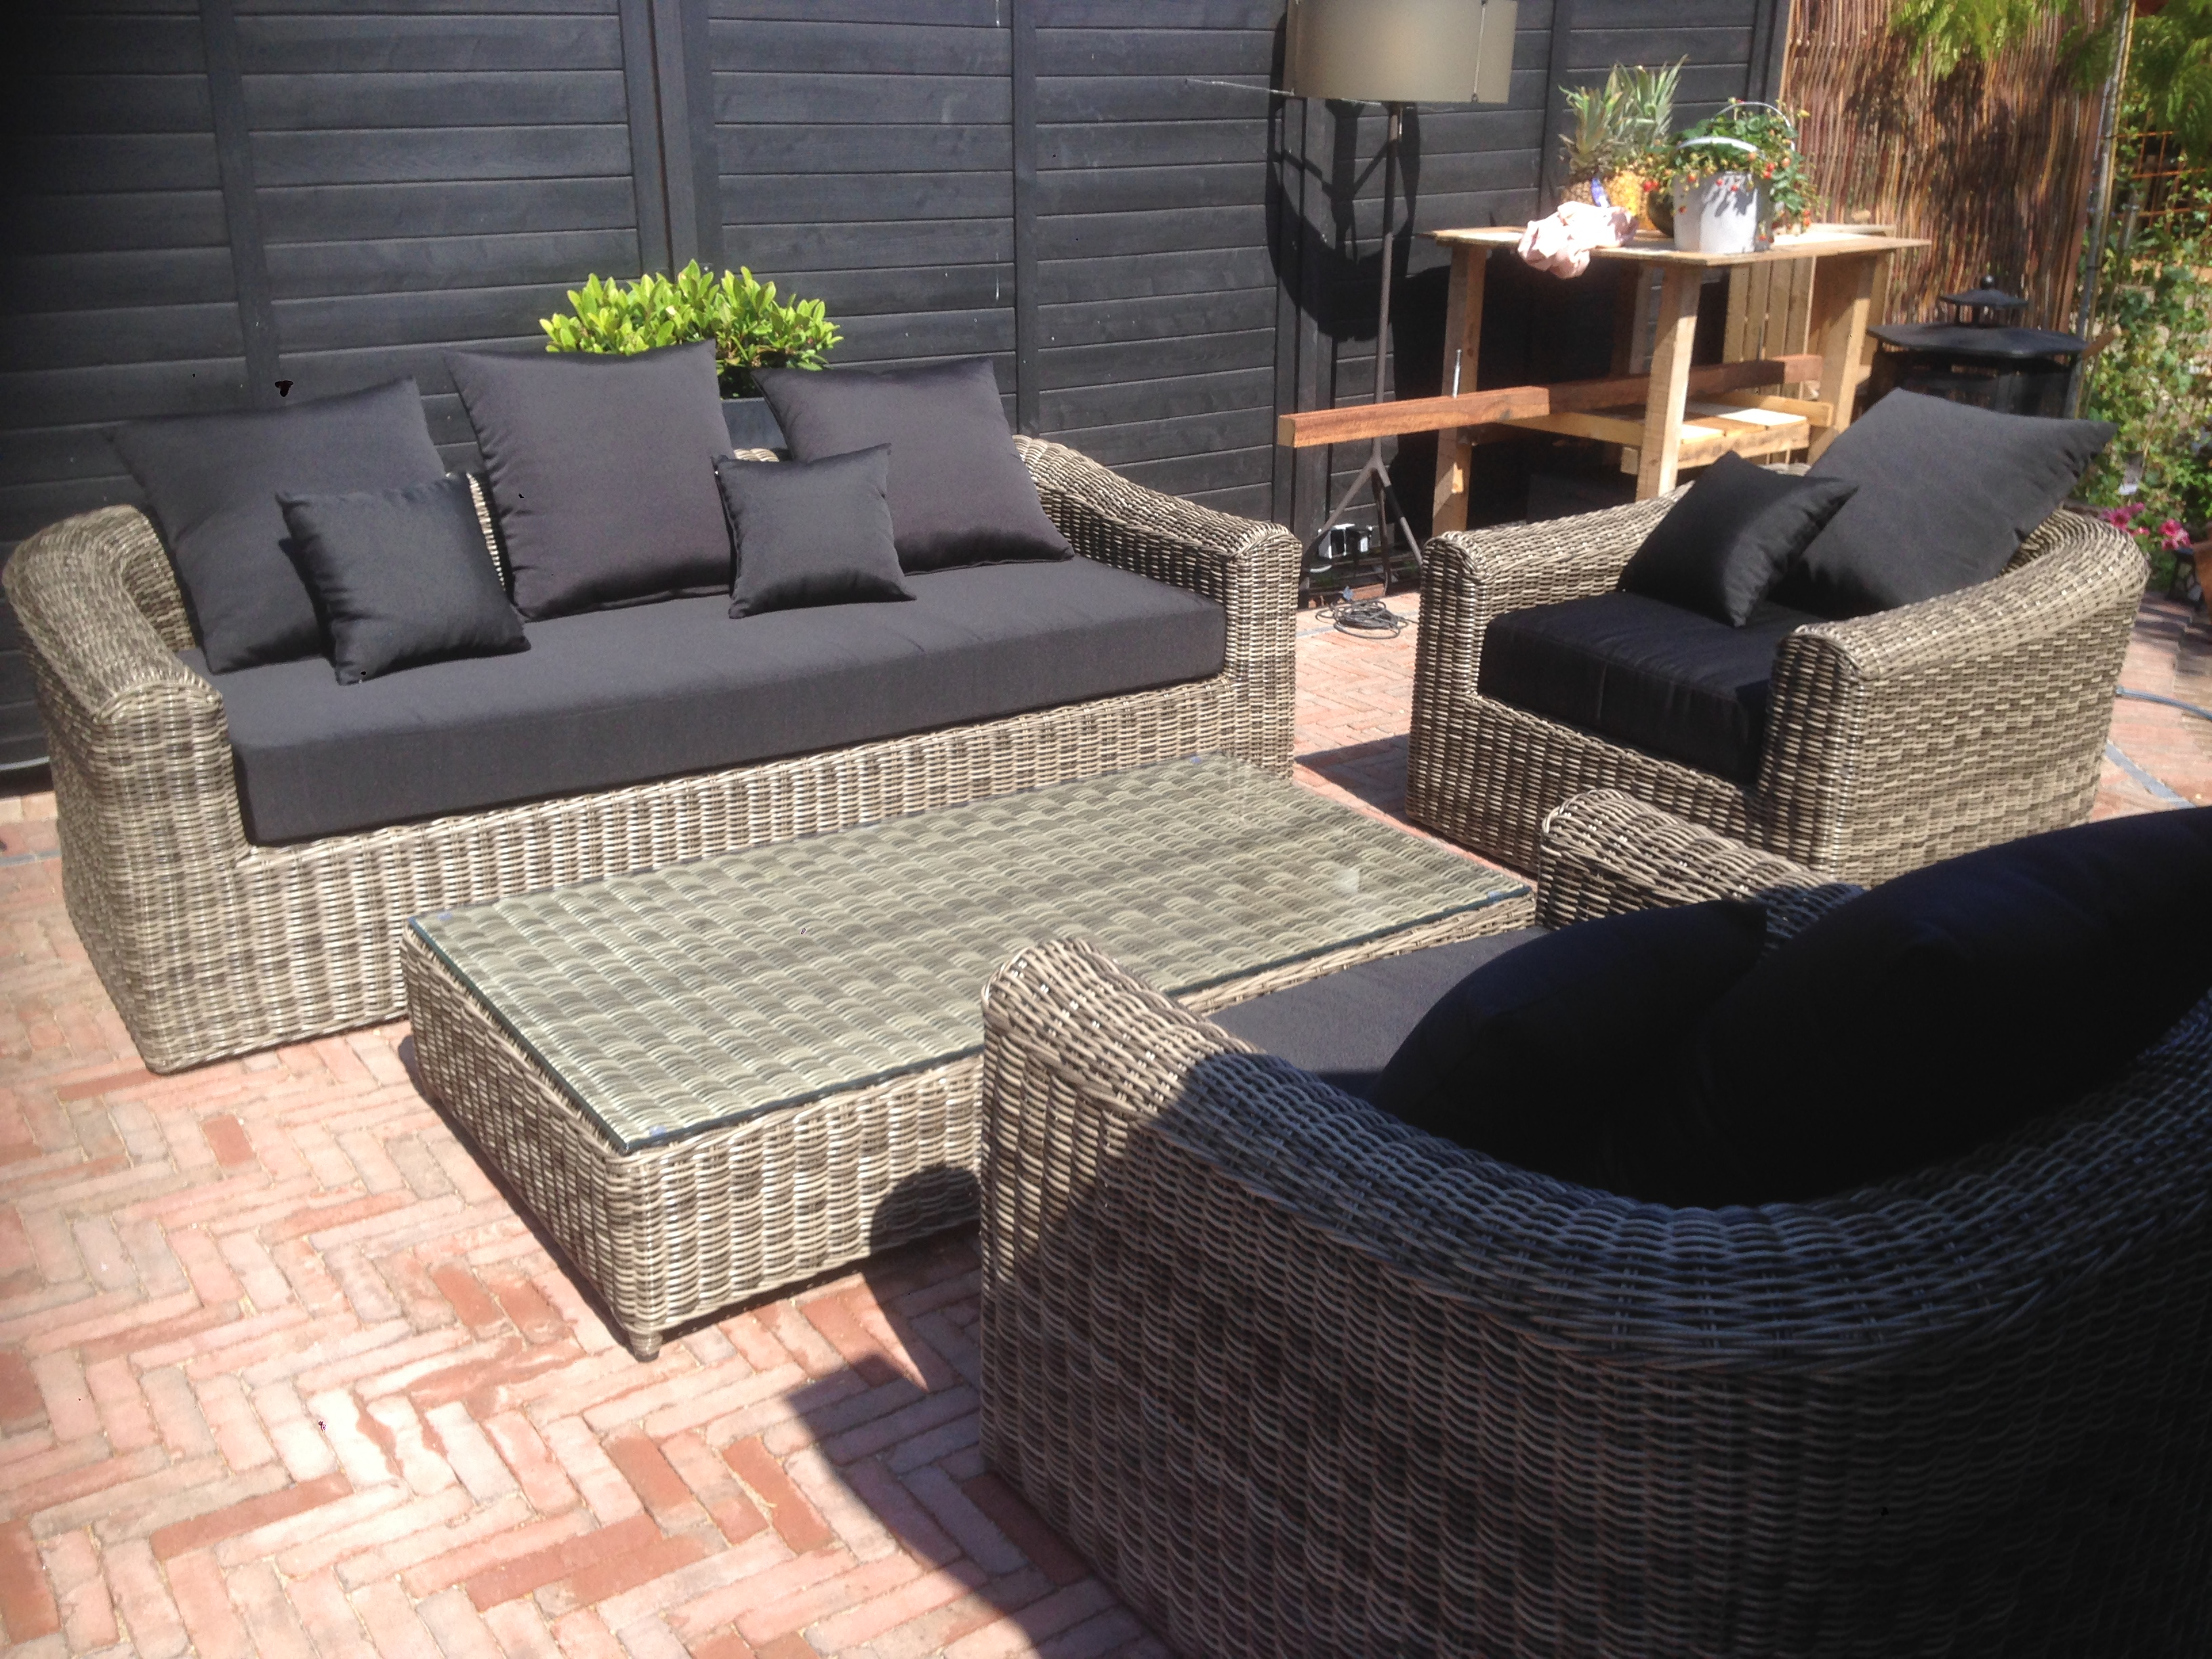 Loungeset montpellier outdoorinstyle for Lounge set rattan gunstig